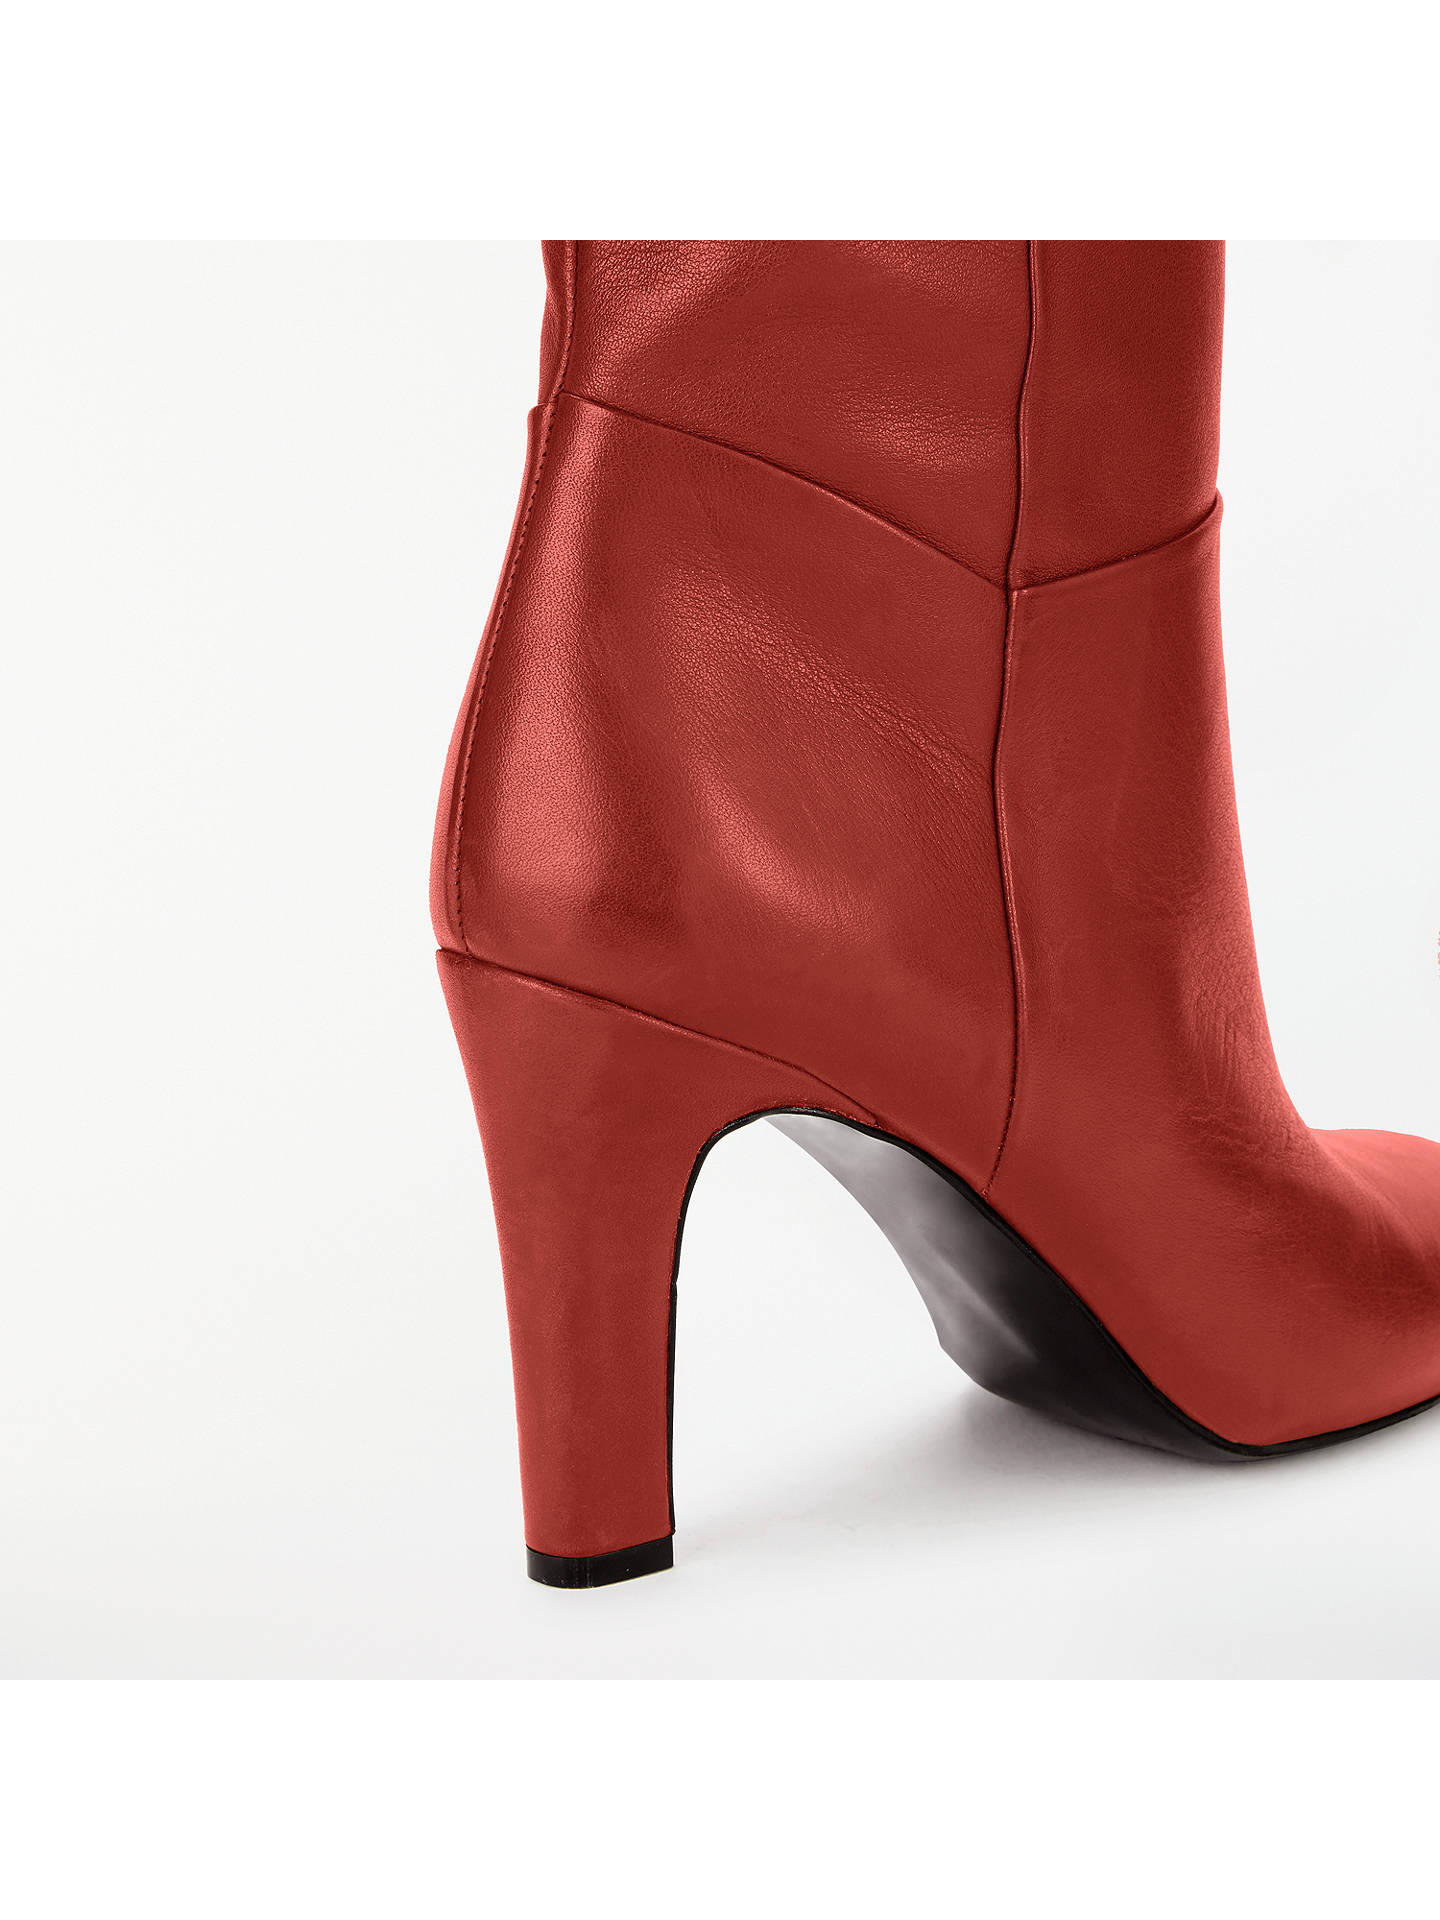 Buy John Lewis & Partners Sienna Knee High Slouch Boots, Red Leather, 3 Online at johnlewis.com